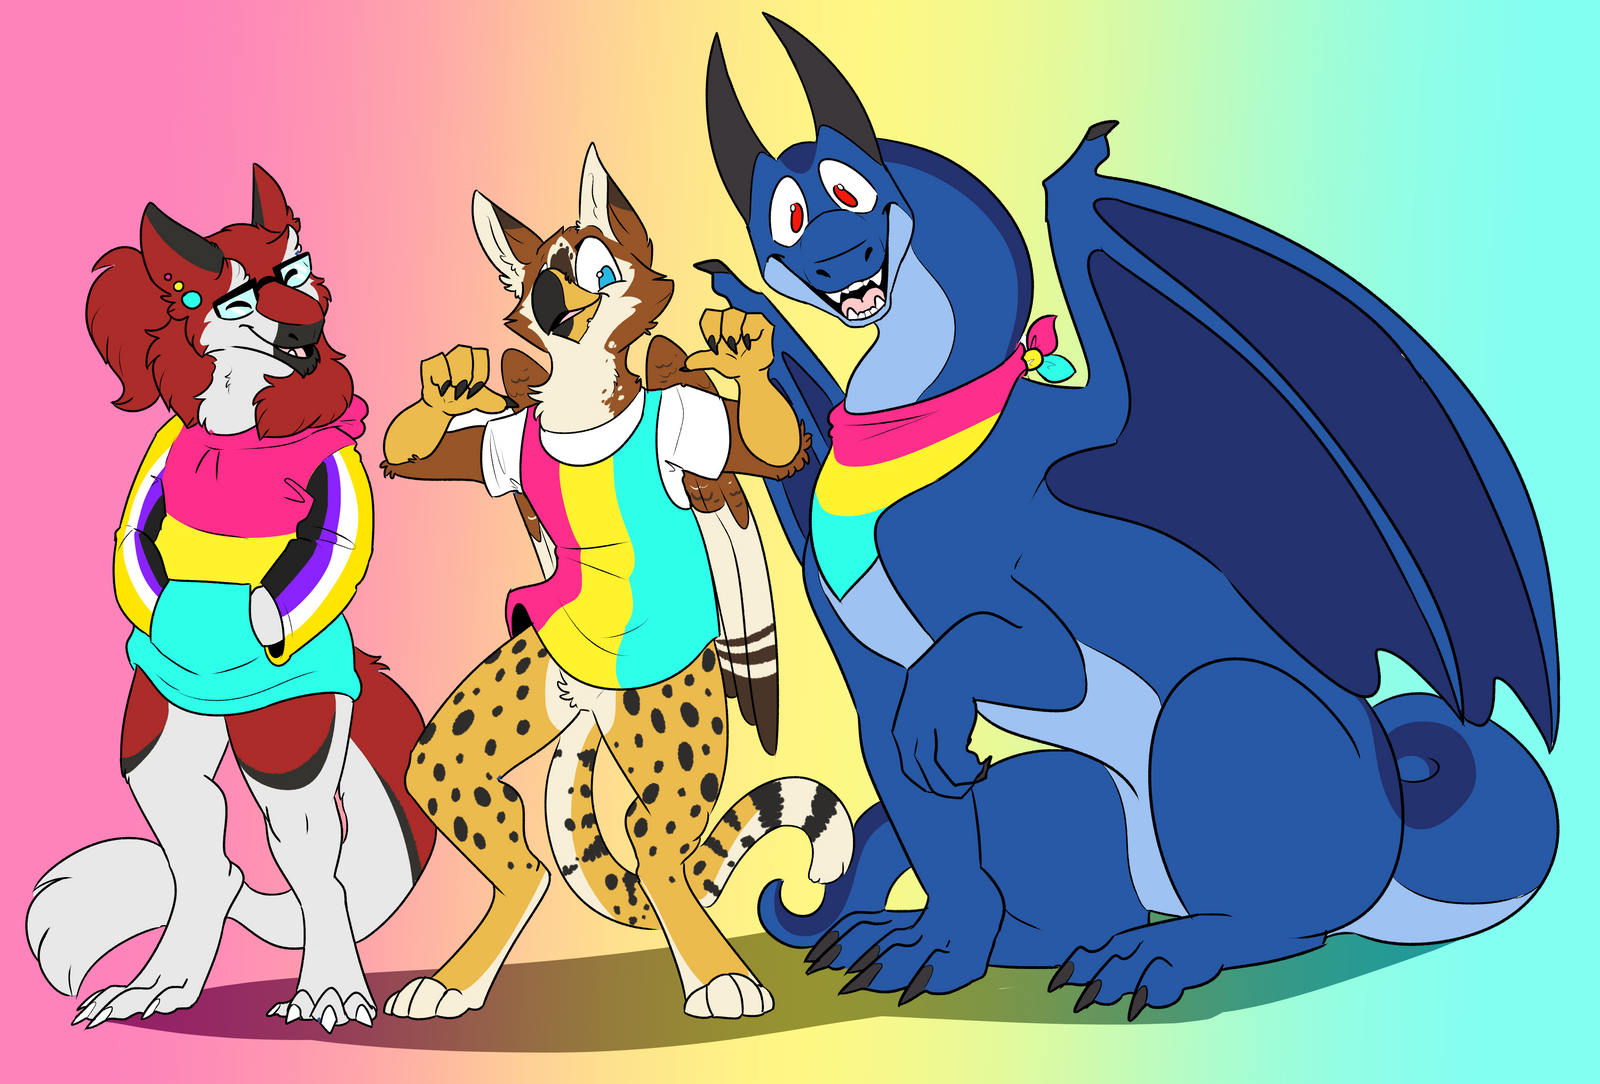 Pride month - Pan friends!